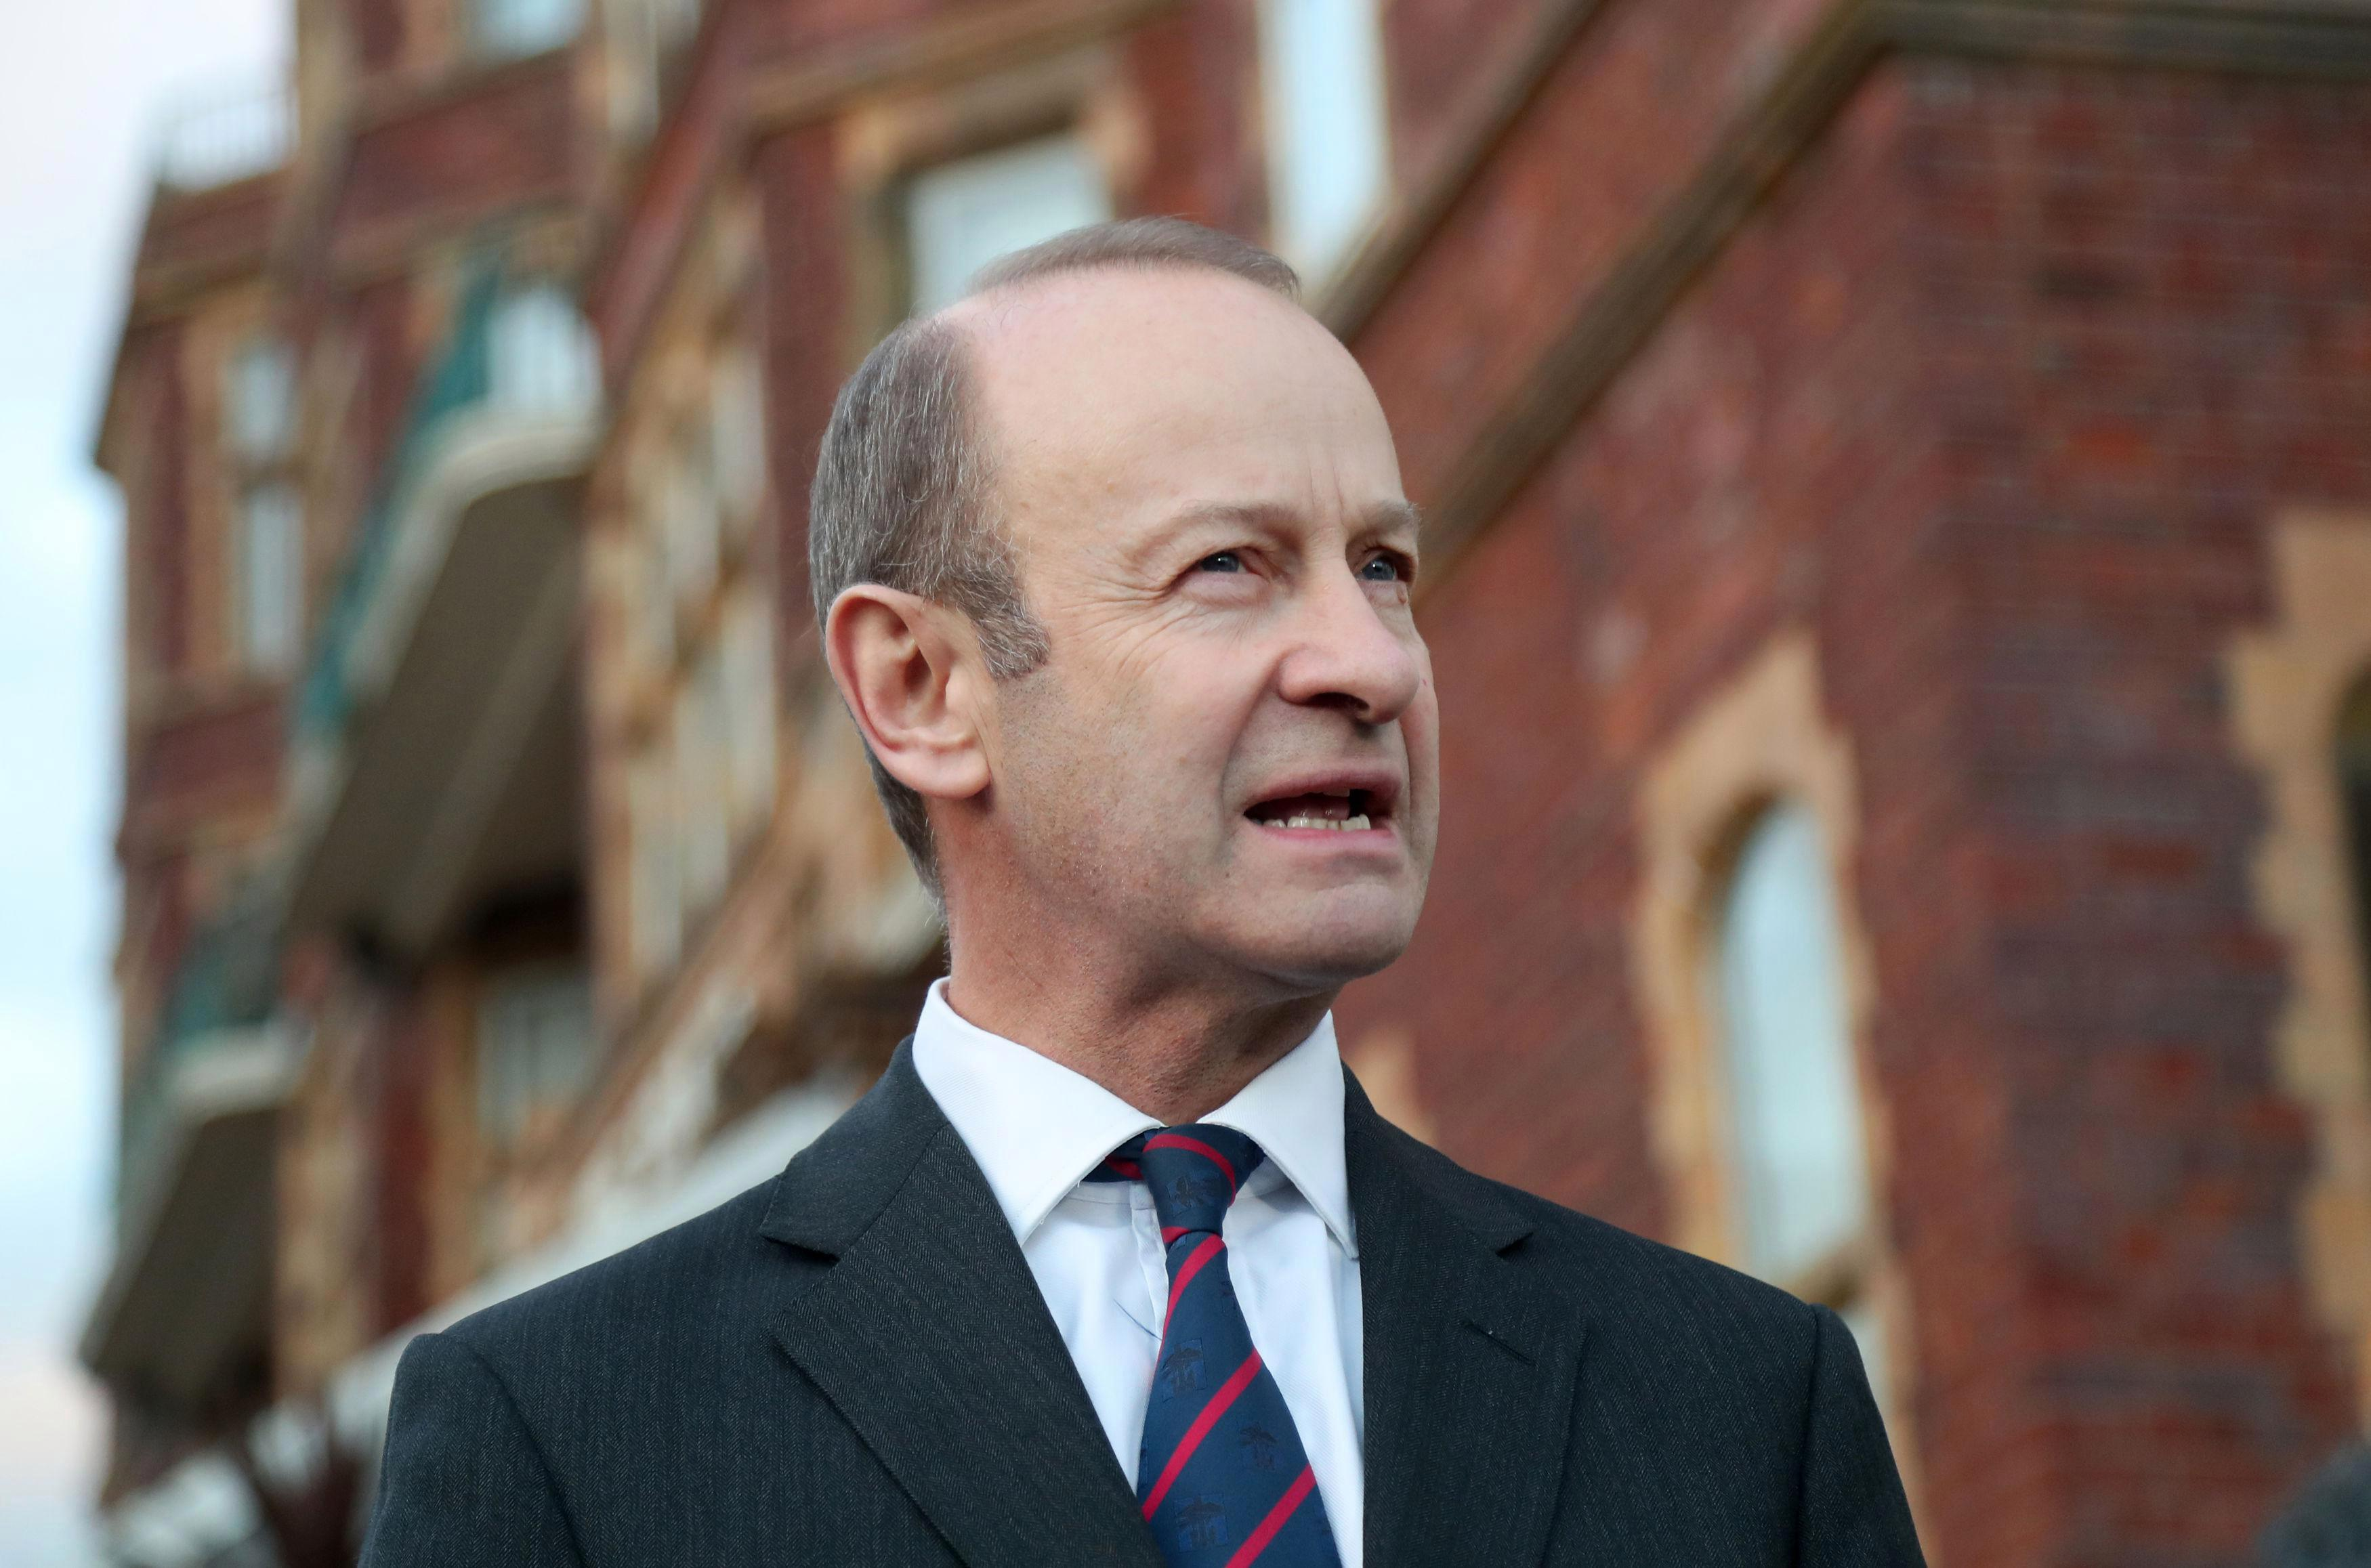 Ukip leader Henry Bolton admits he's spent all his savings after party stopped paying him to try and force him to quit over Jo Marney scandal